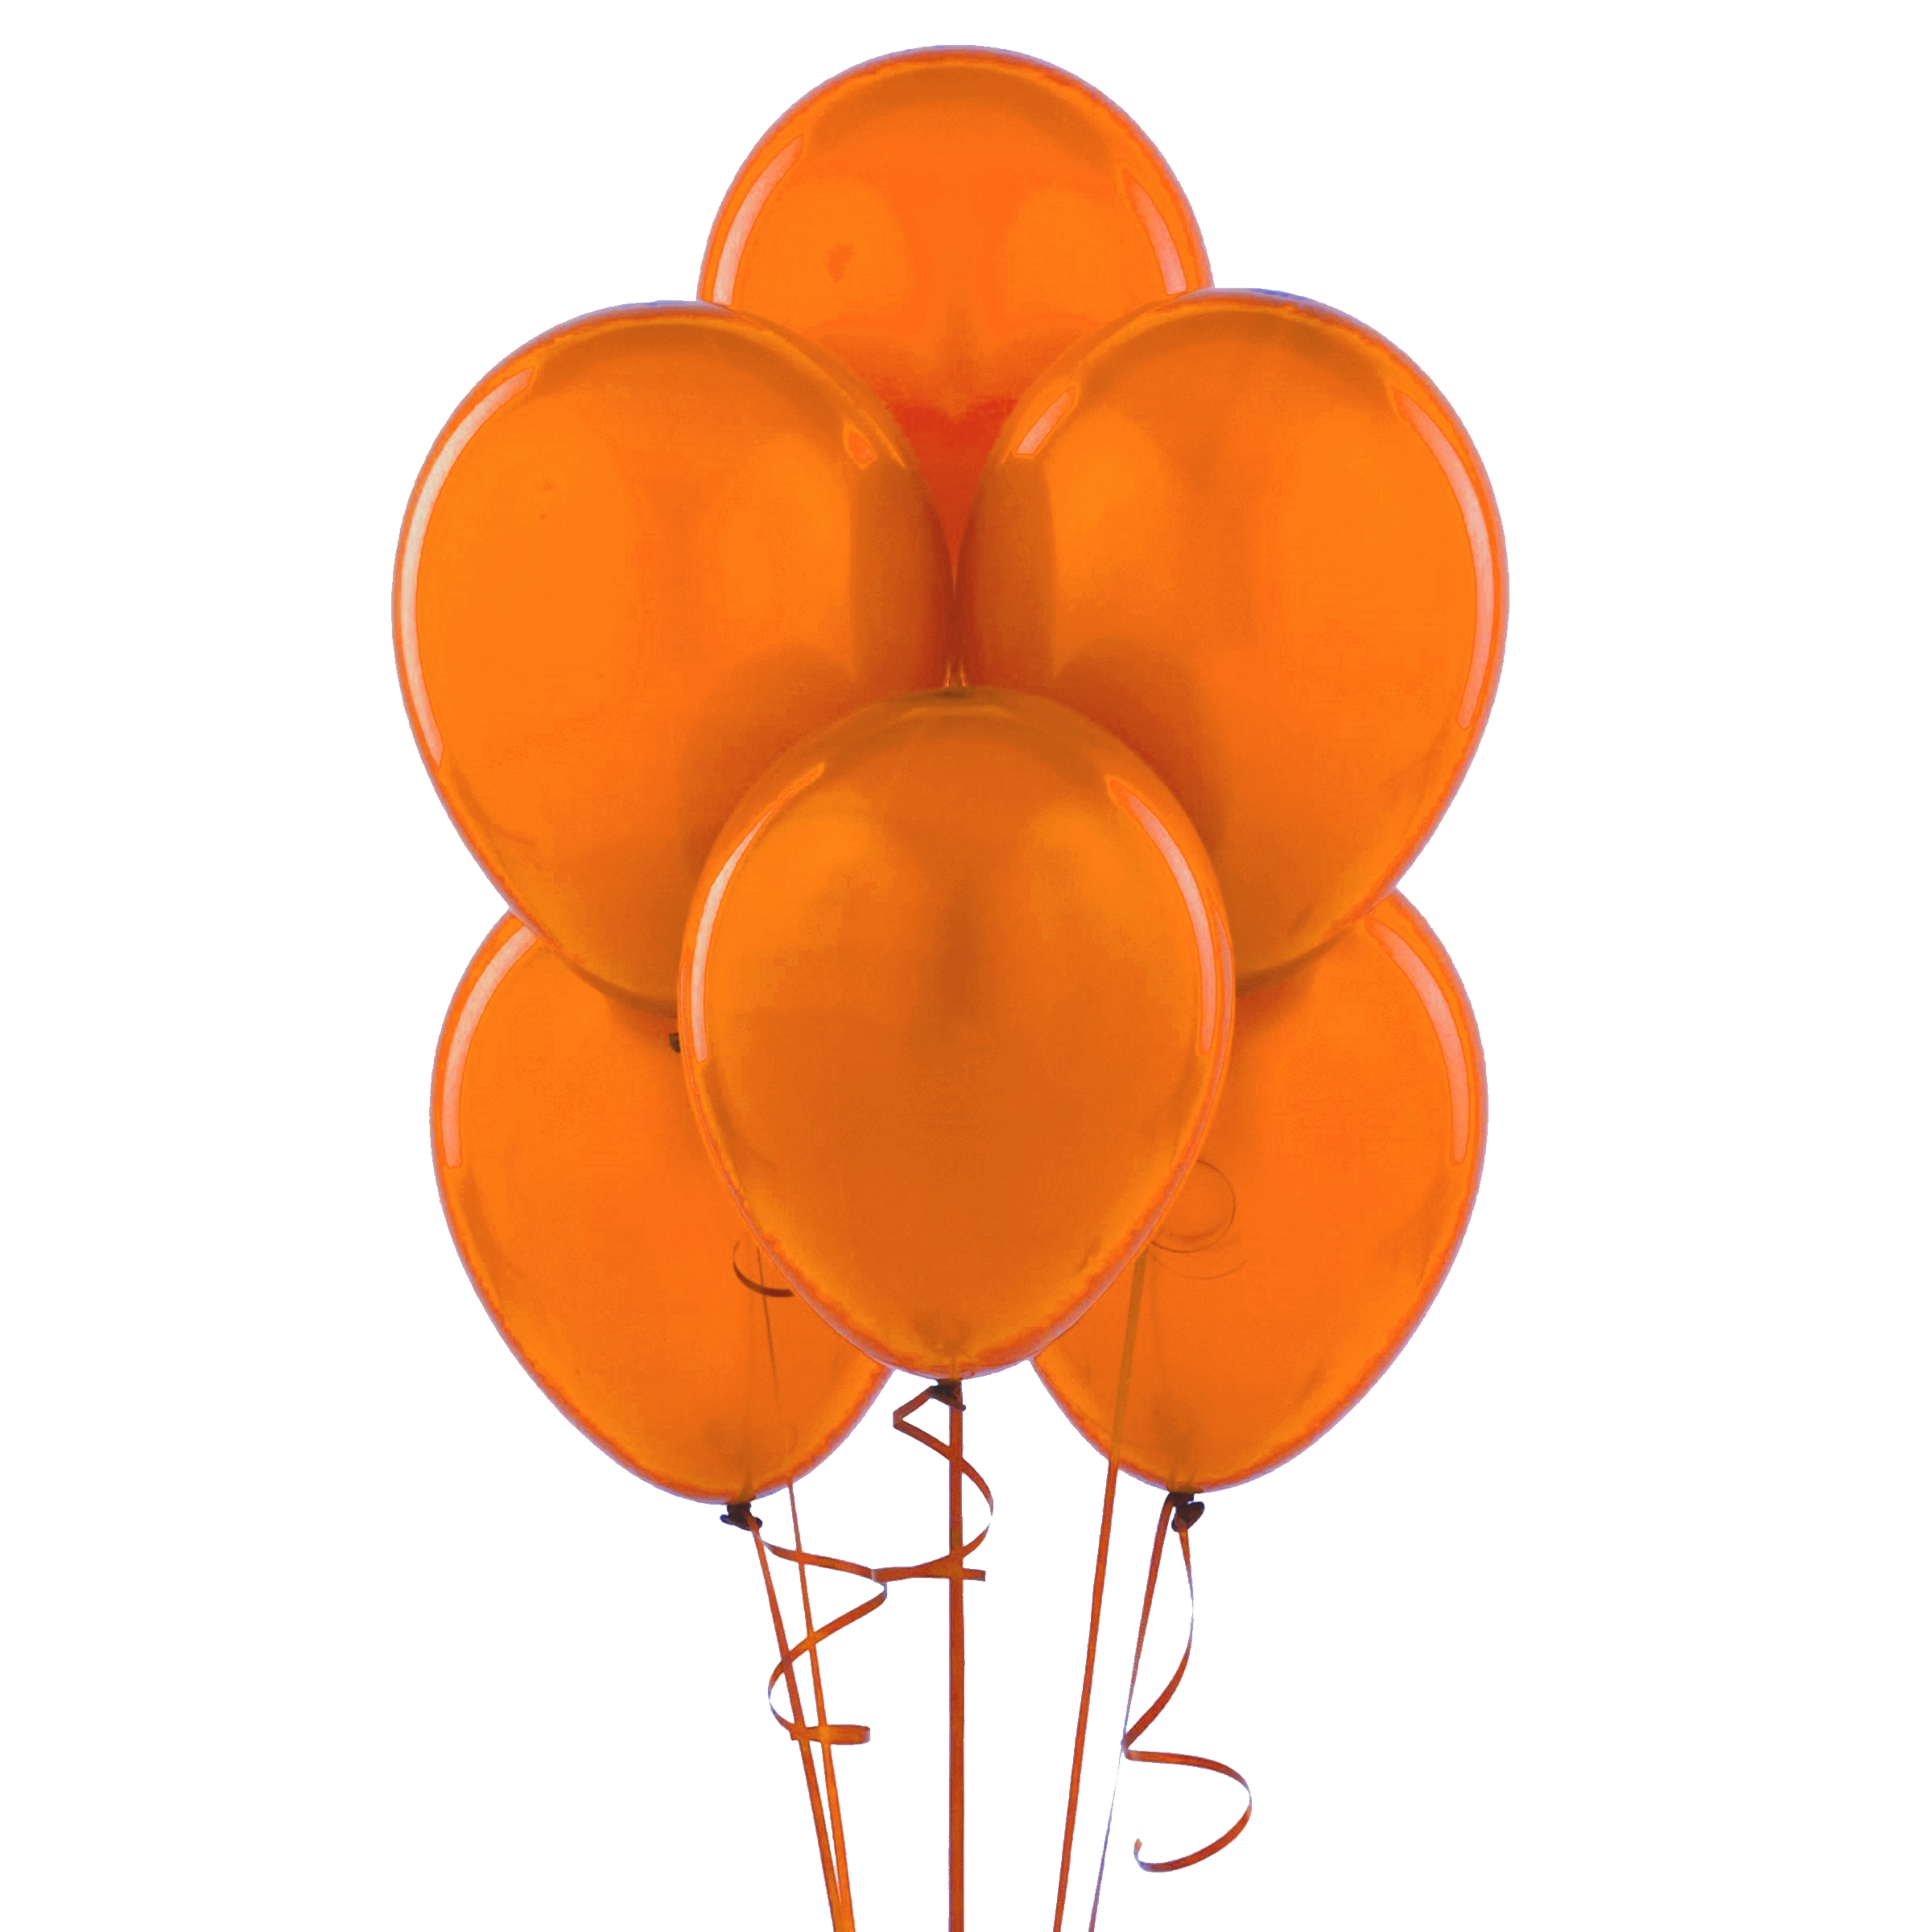 "72 Latex Balloons 12"" with Clips and Curling Ribbon - Orange"